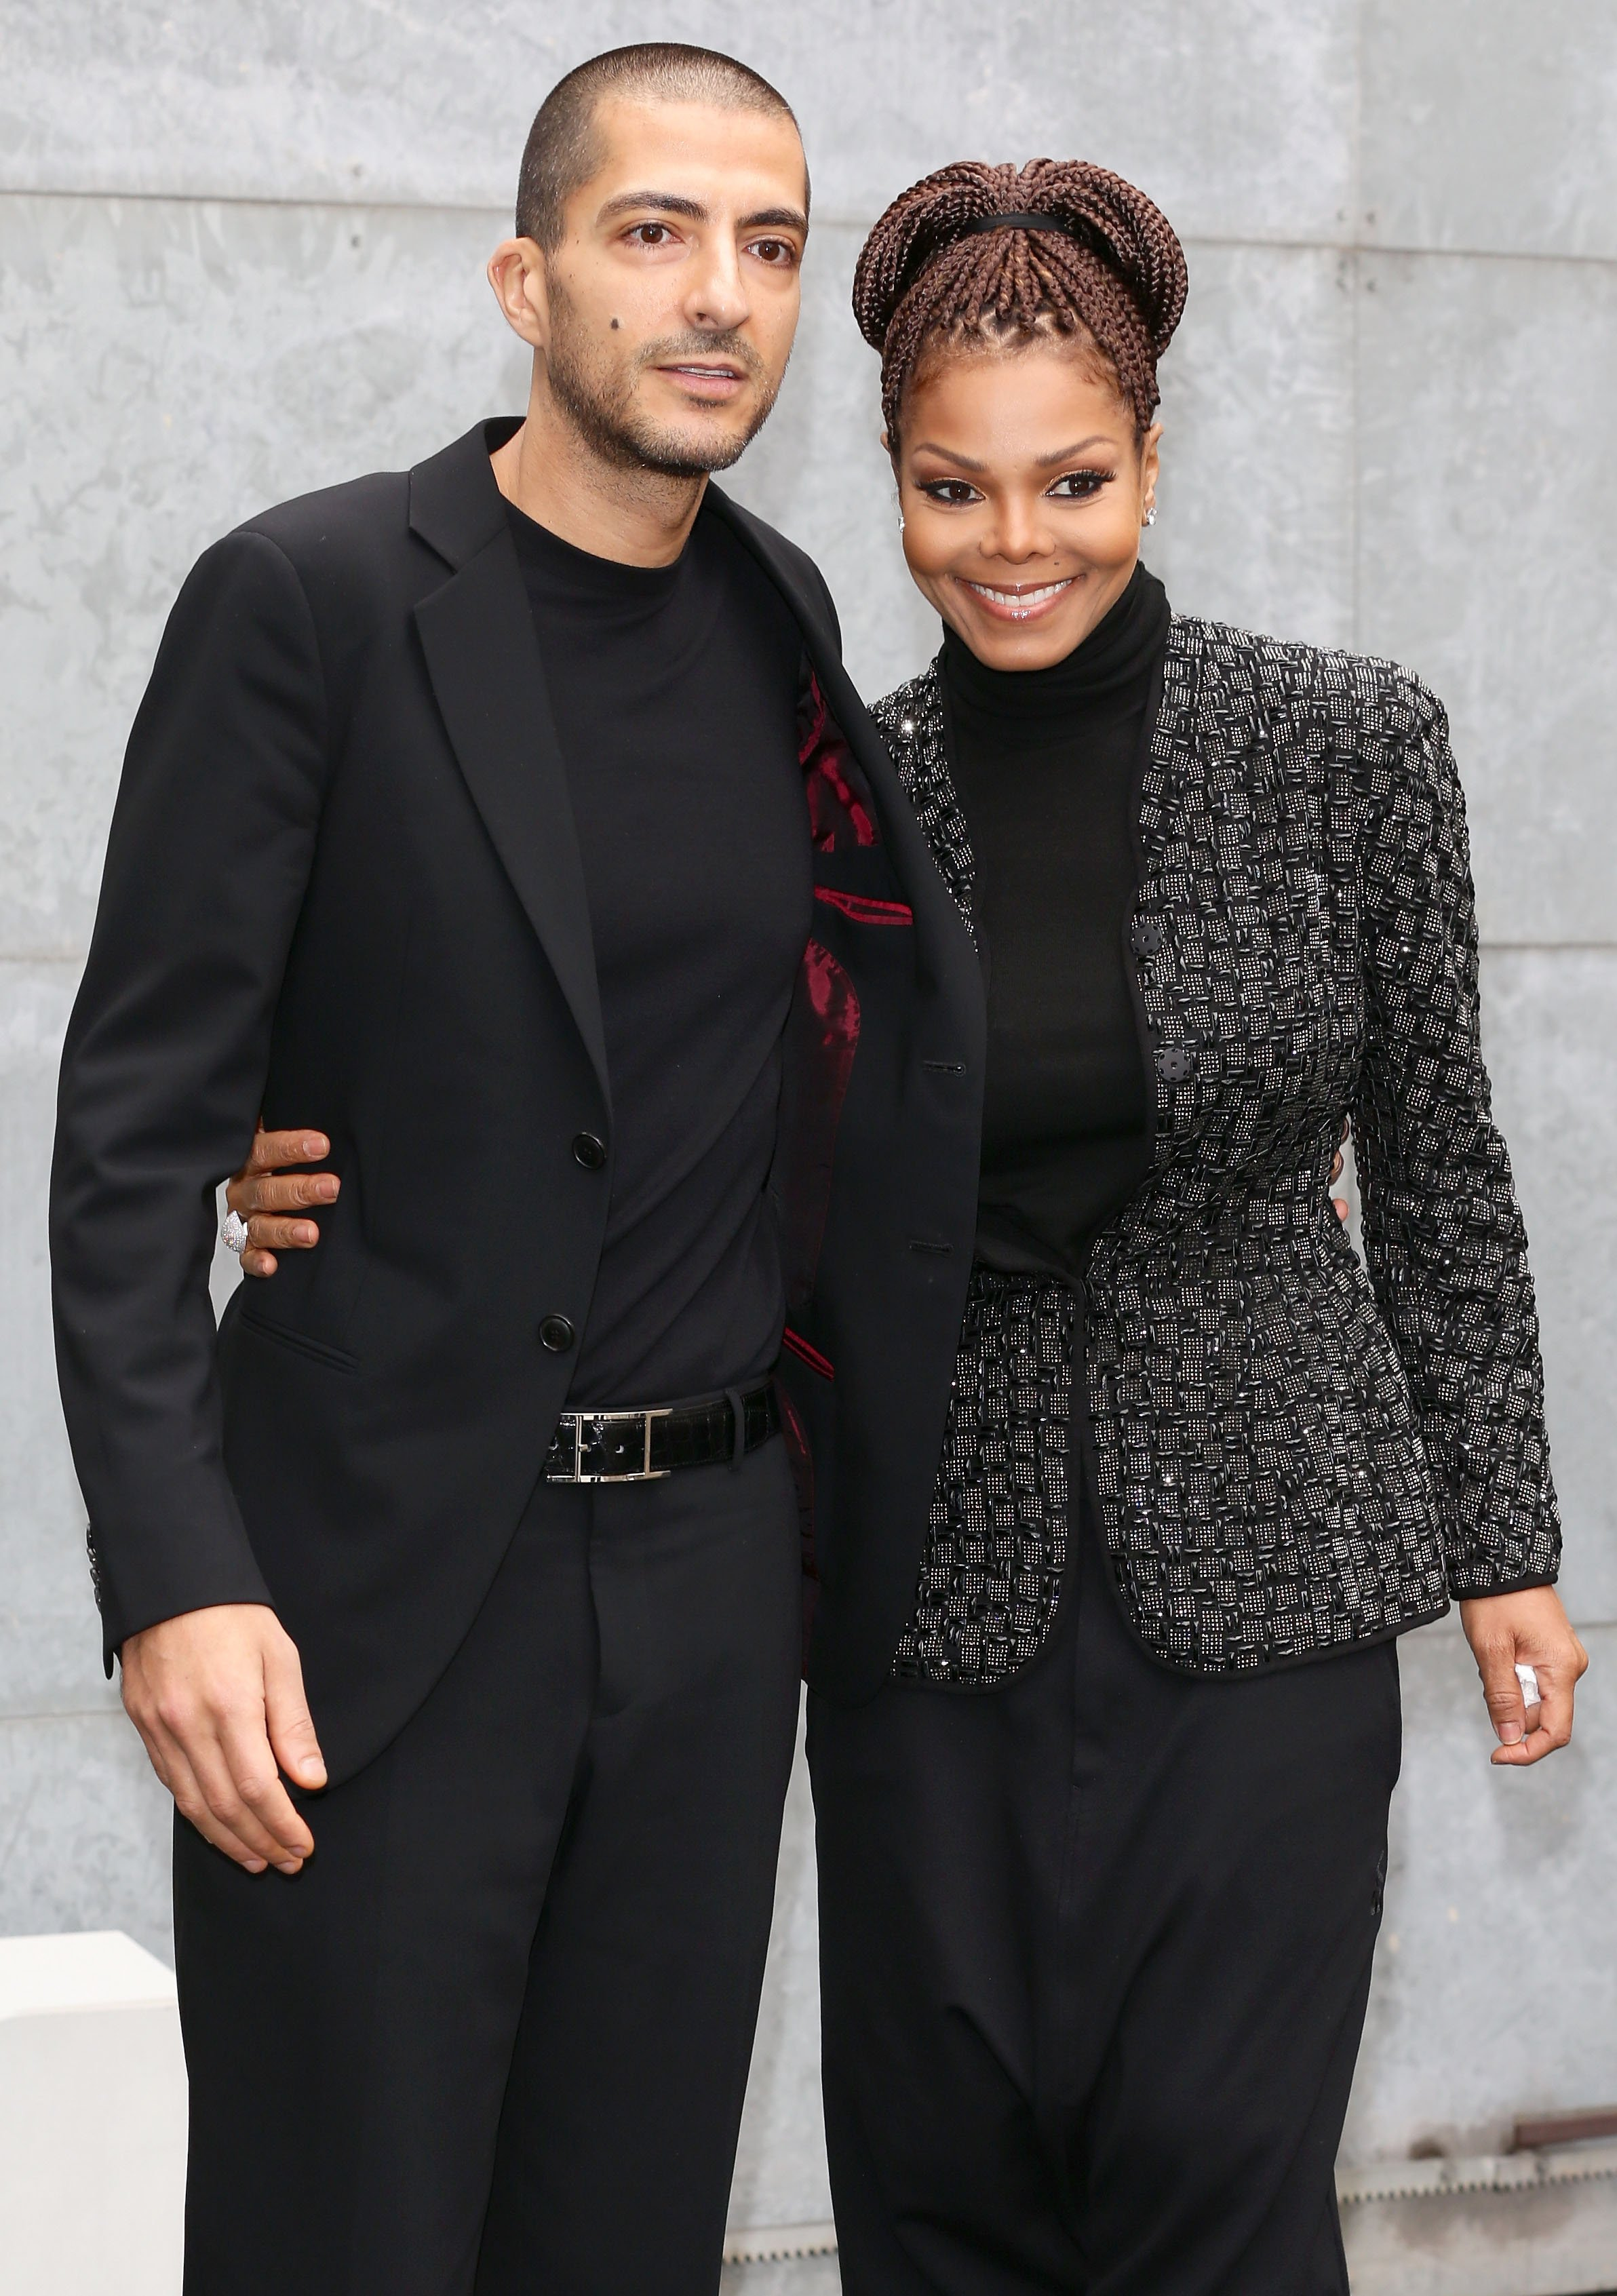 (Happier Times) Janet Jackson & Wissam al Mana during Milan Fashion Week Womenswear Fall/Winter 2013/14 on Feb. 25, 2013 | Photo: Getty Images